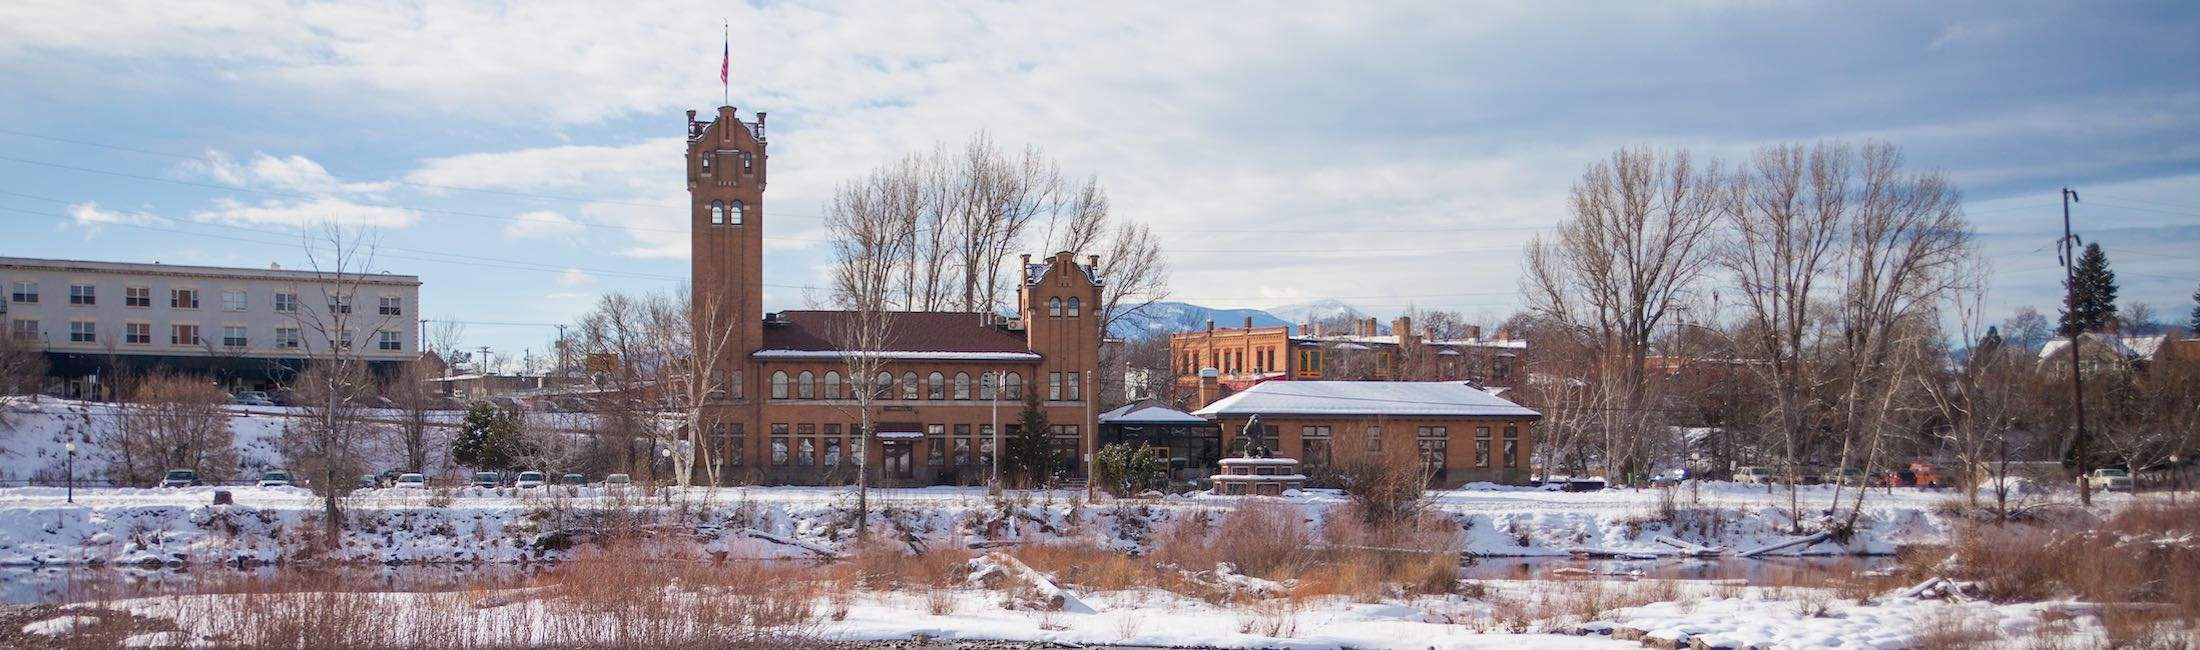 Your Monthly Guide to Missoula: November 2019